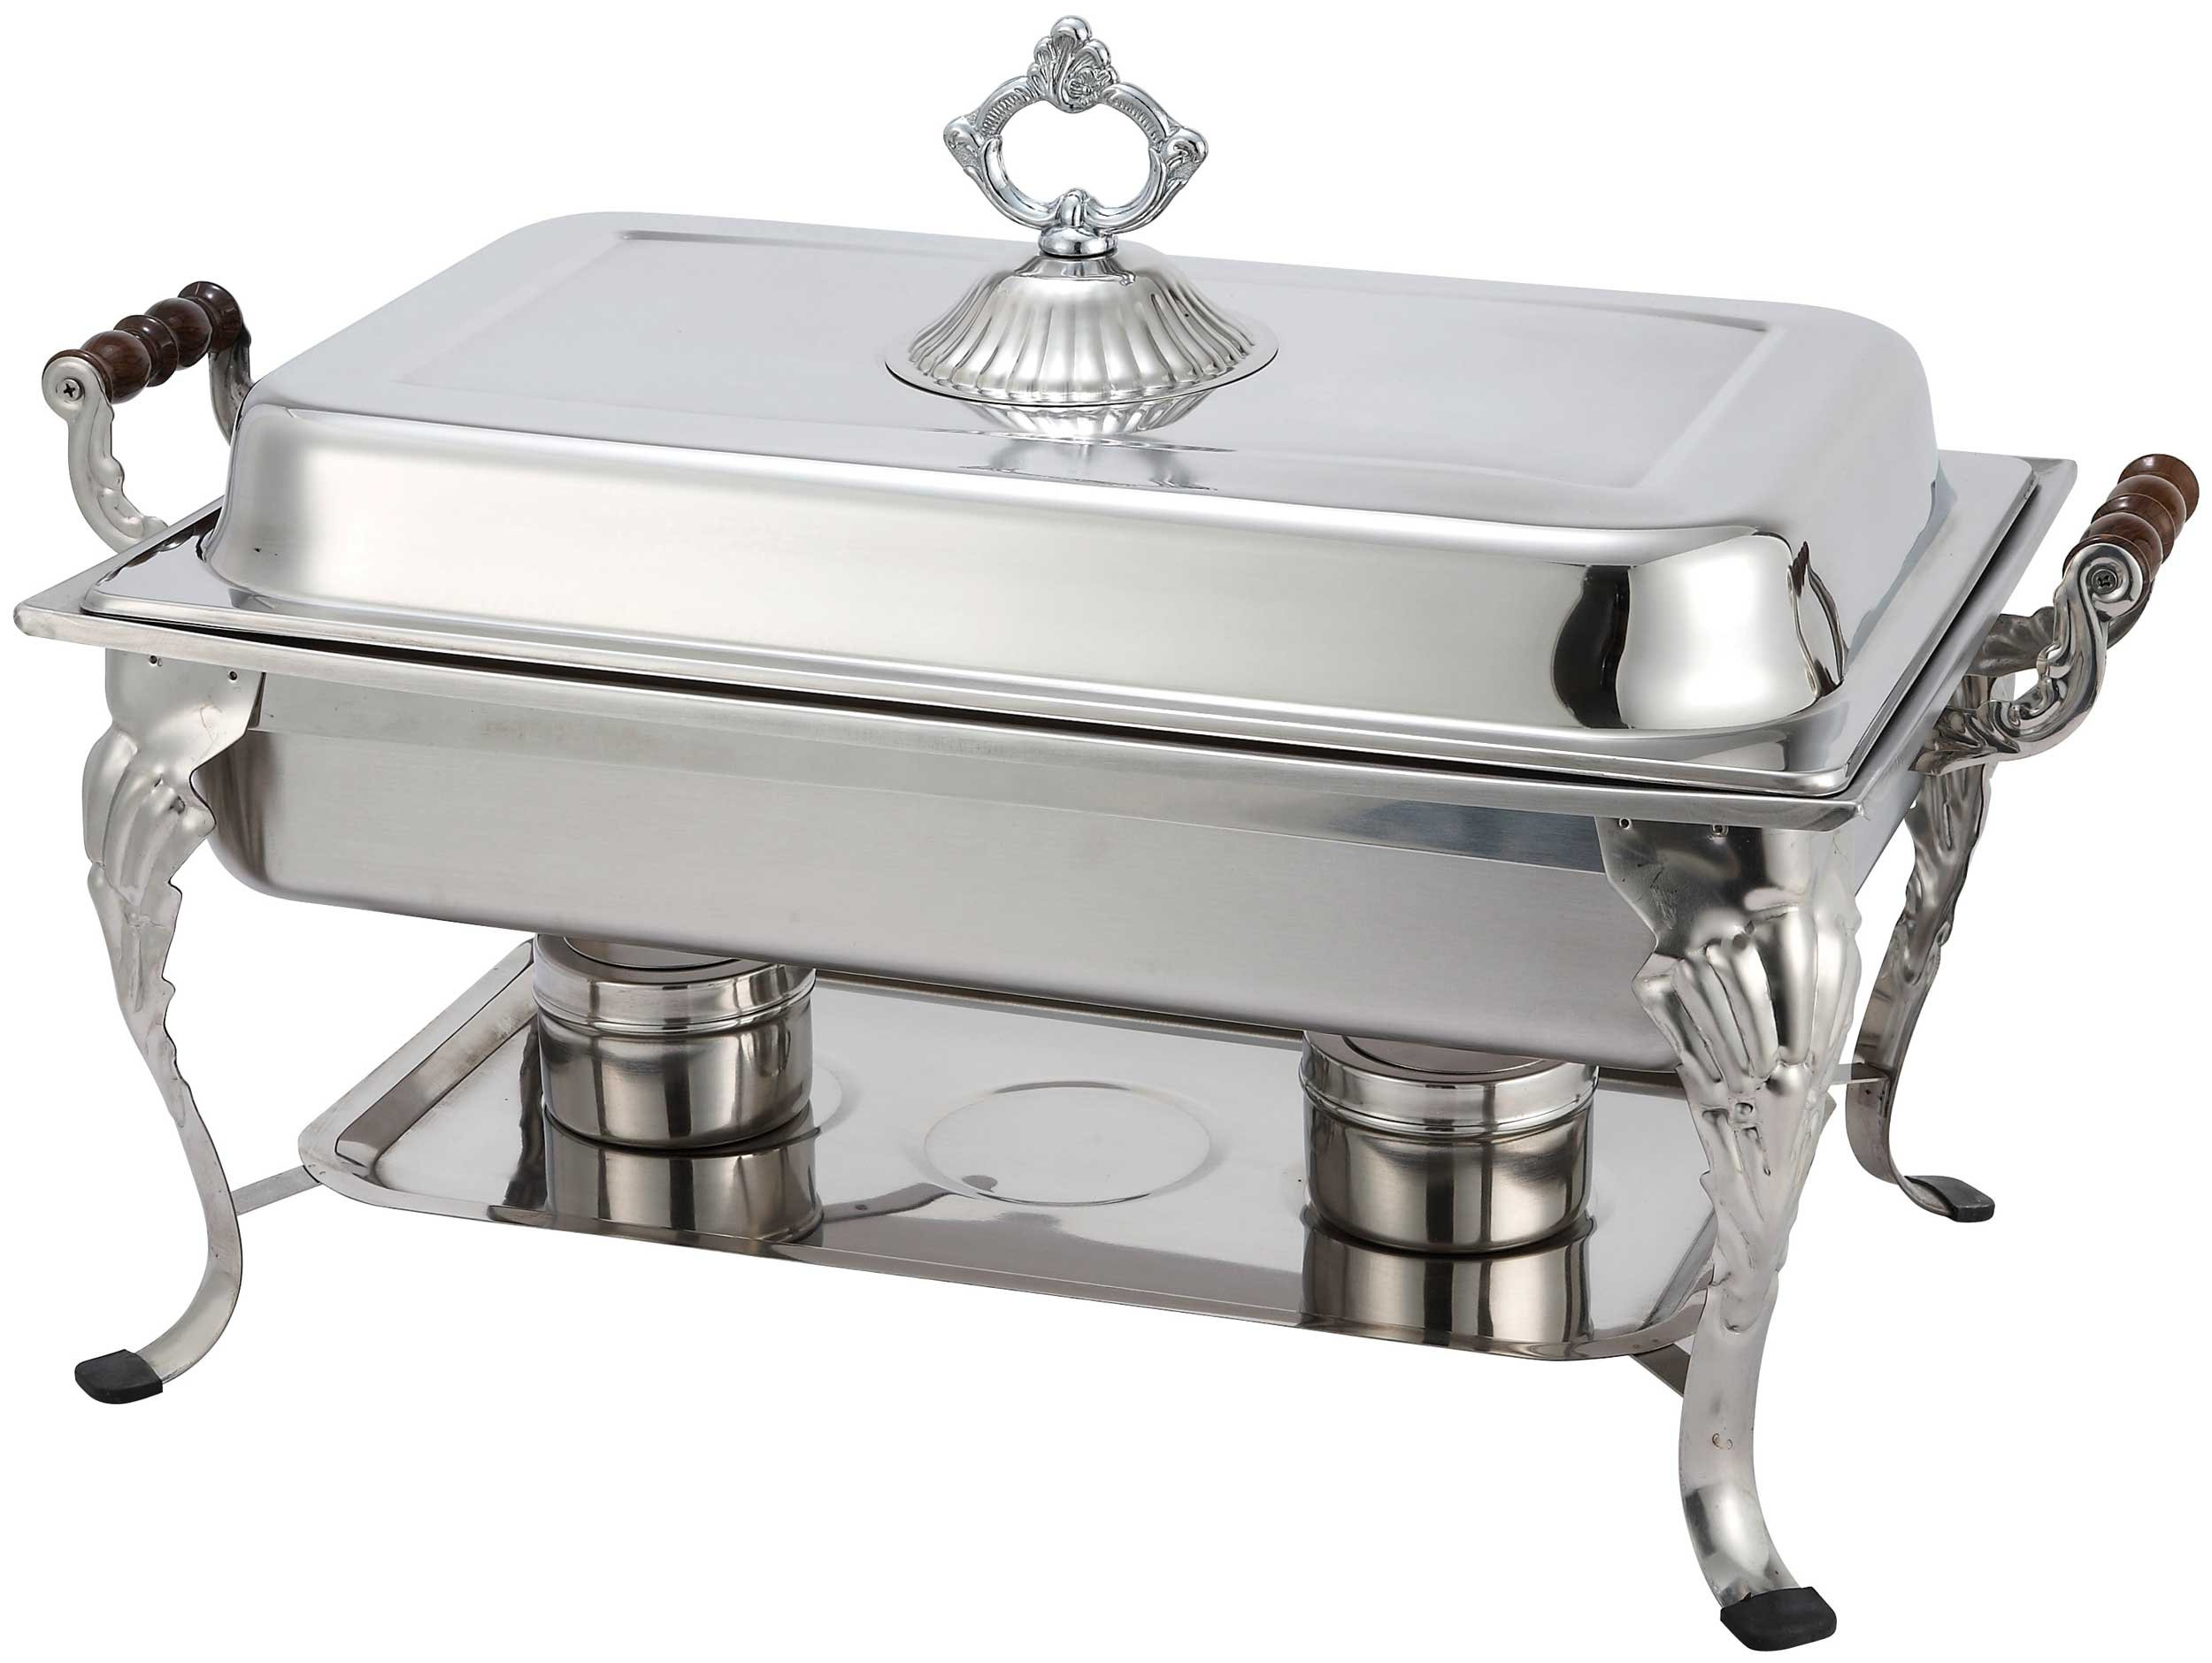 Winco 408-1 Full Rectangular Crown Chafer, 8-Quart by Winco